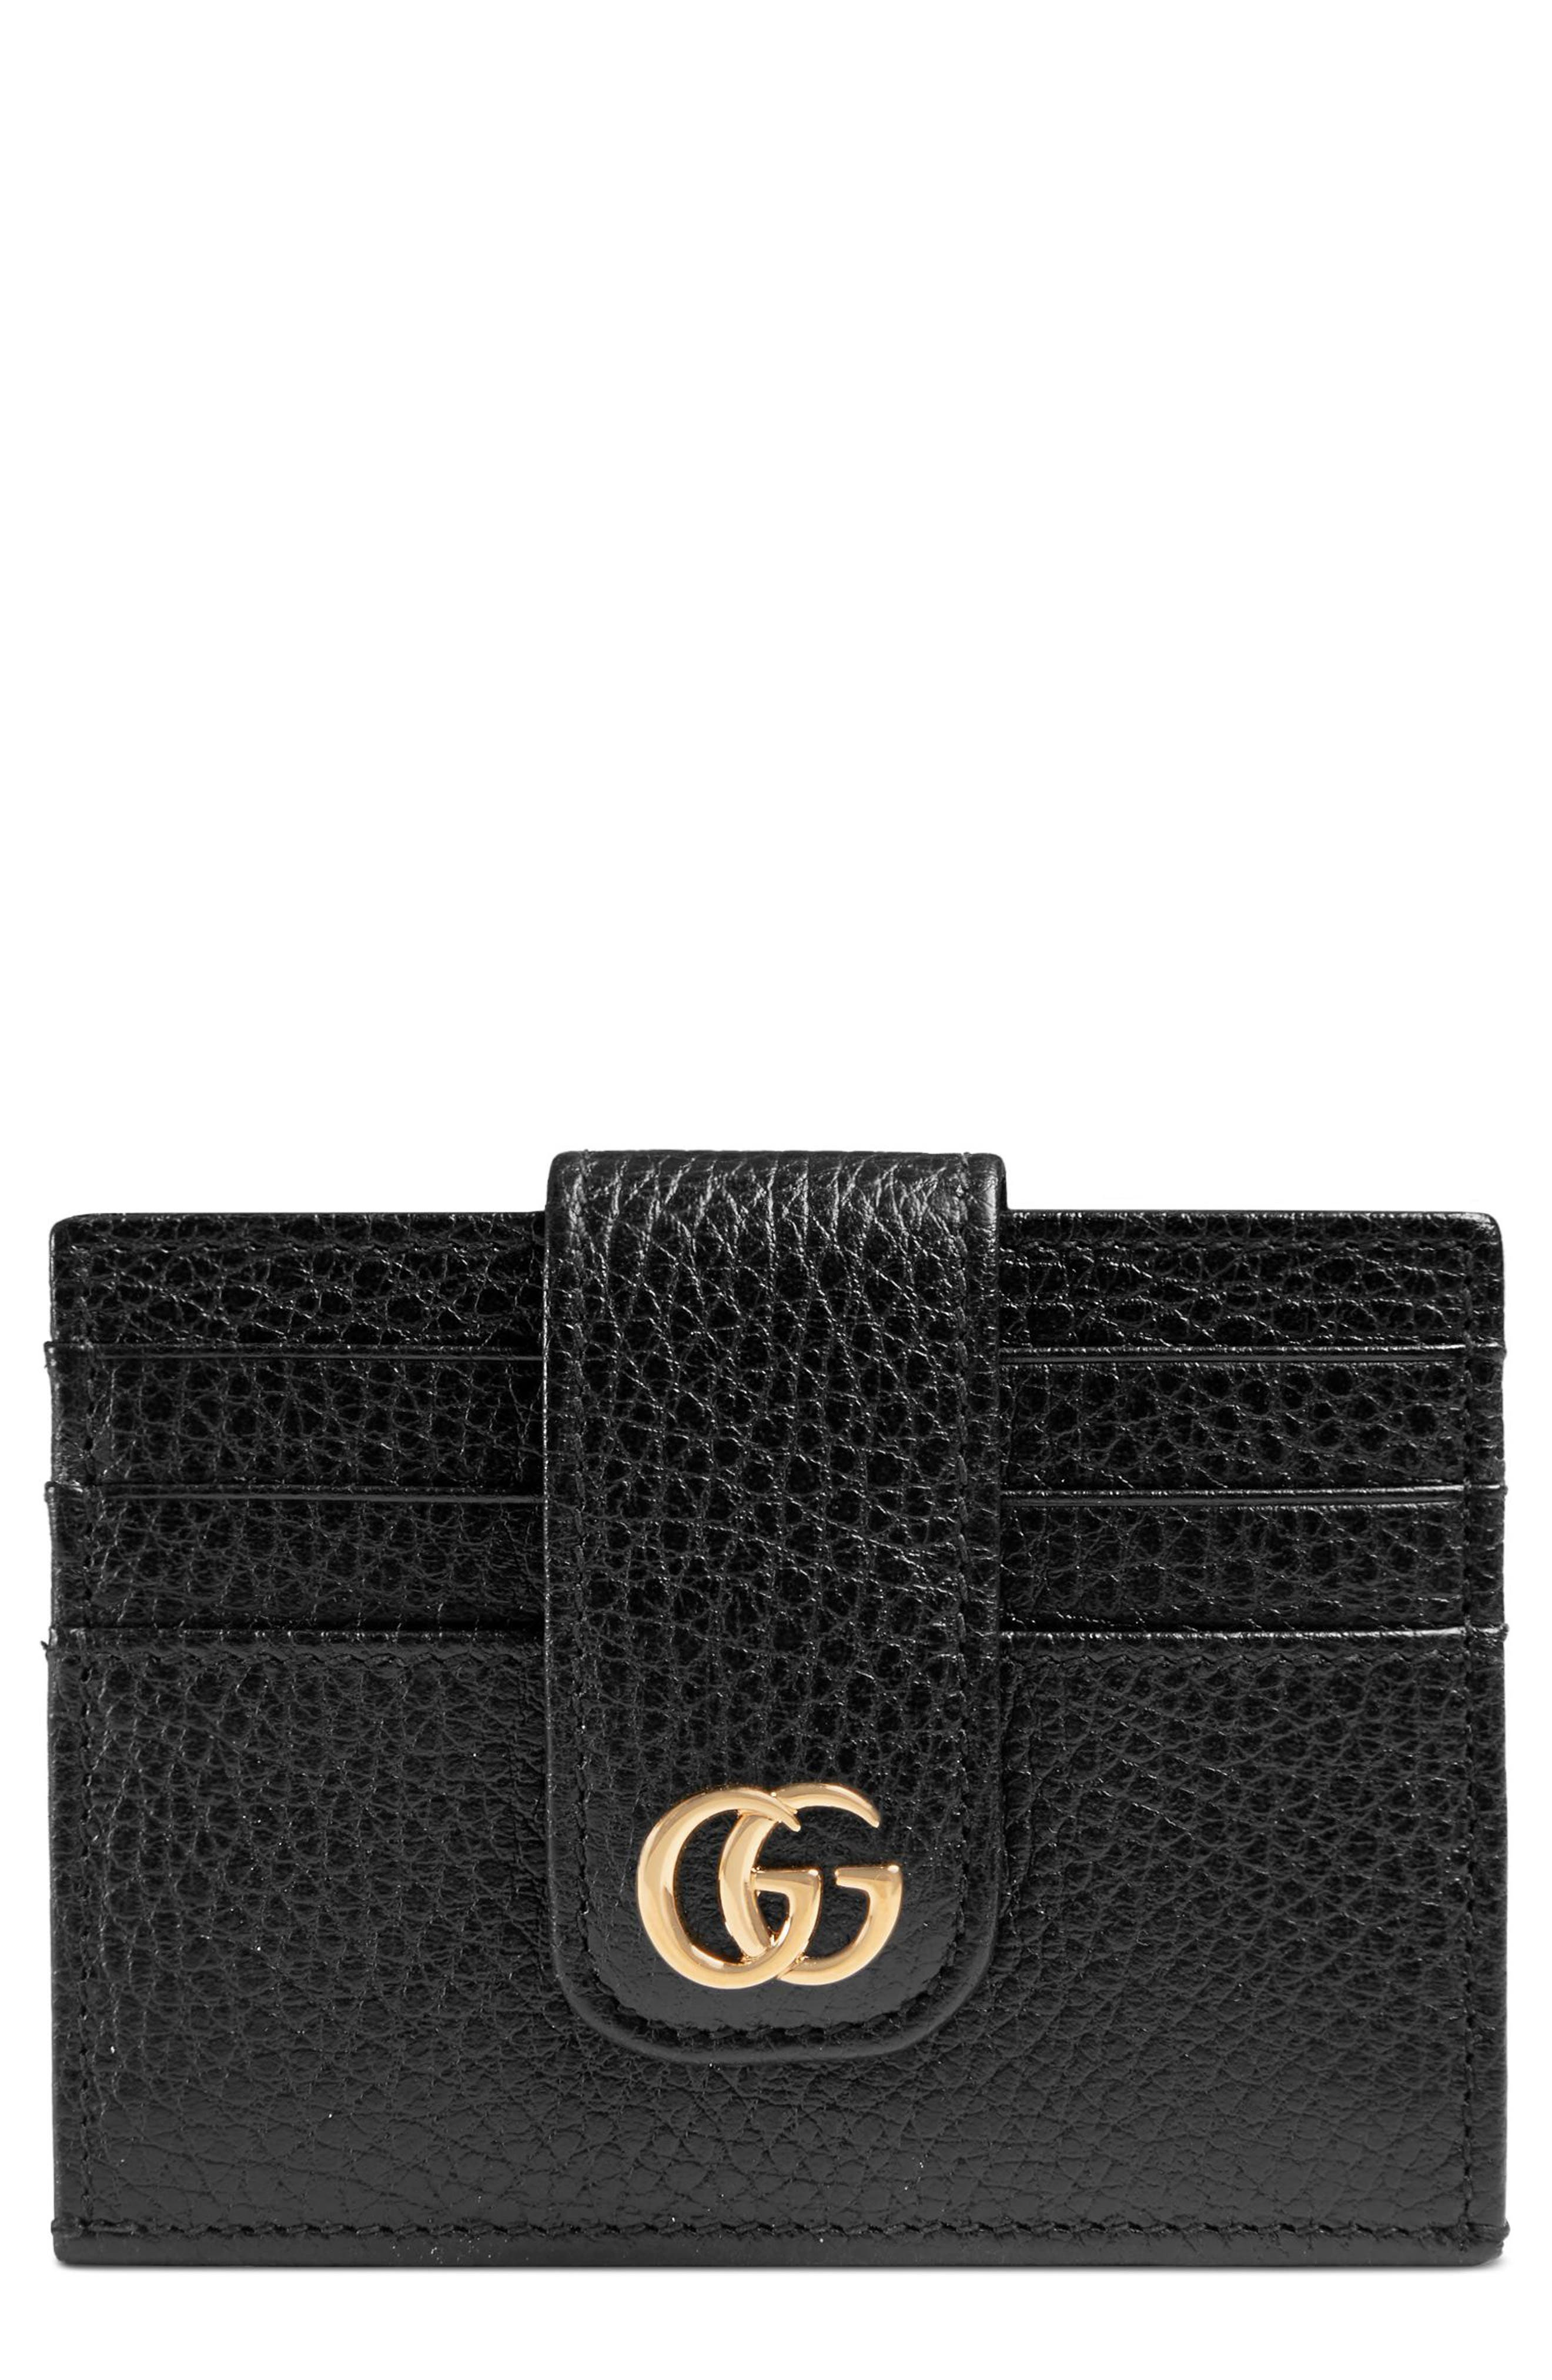 GG Marmont Leather Card Case,                             Main thumbnail 1, color,                             NERO